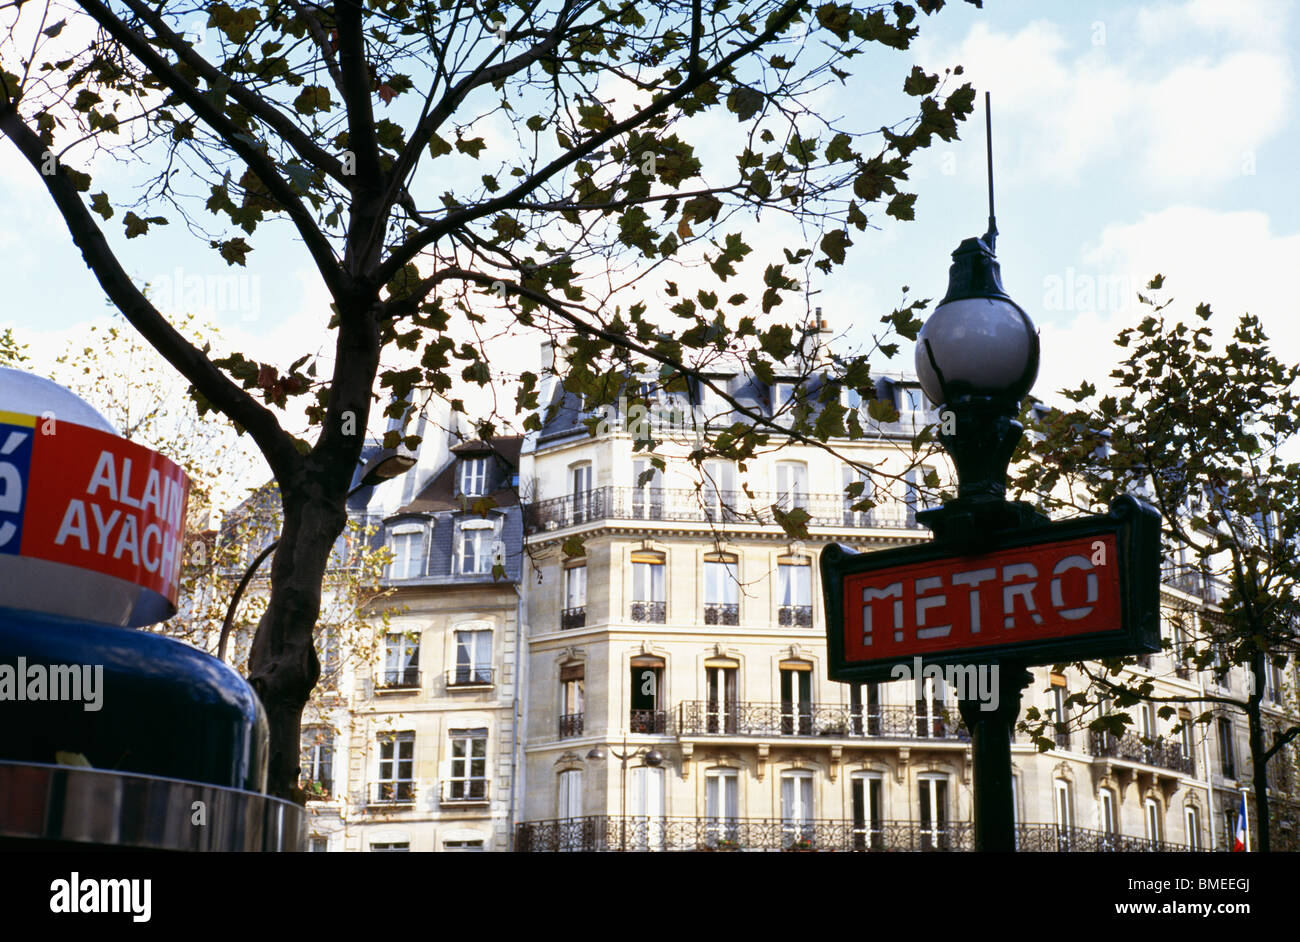 View of metro sign in city Stock Photo